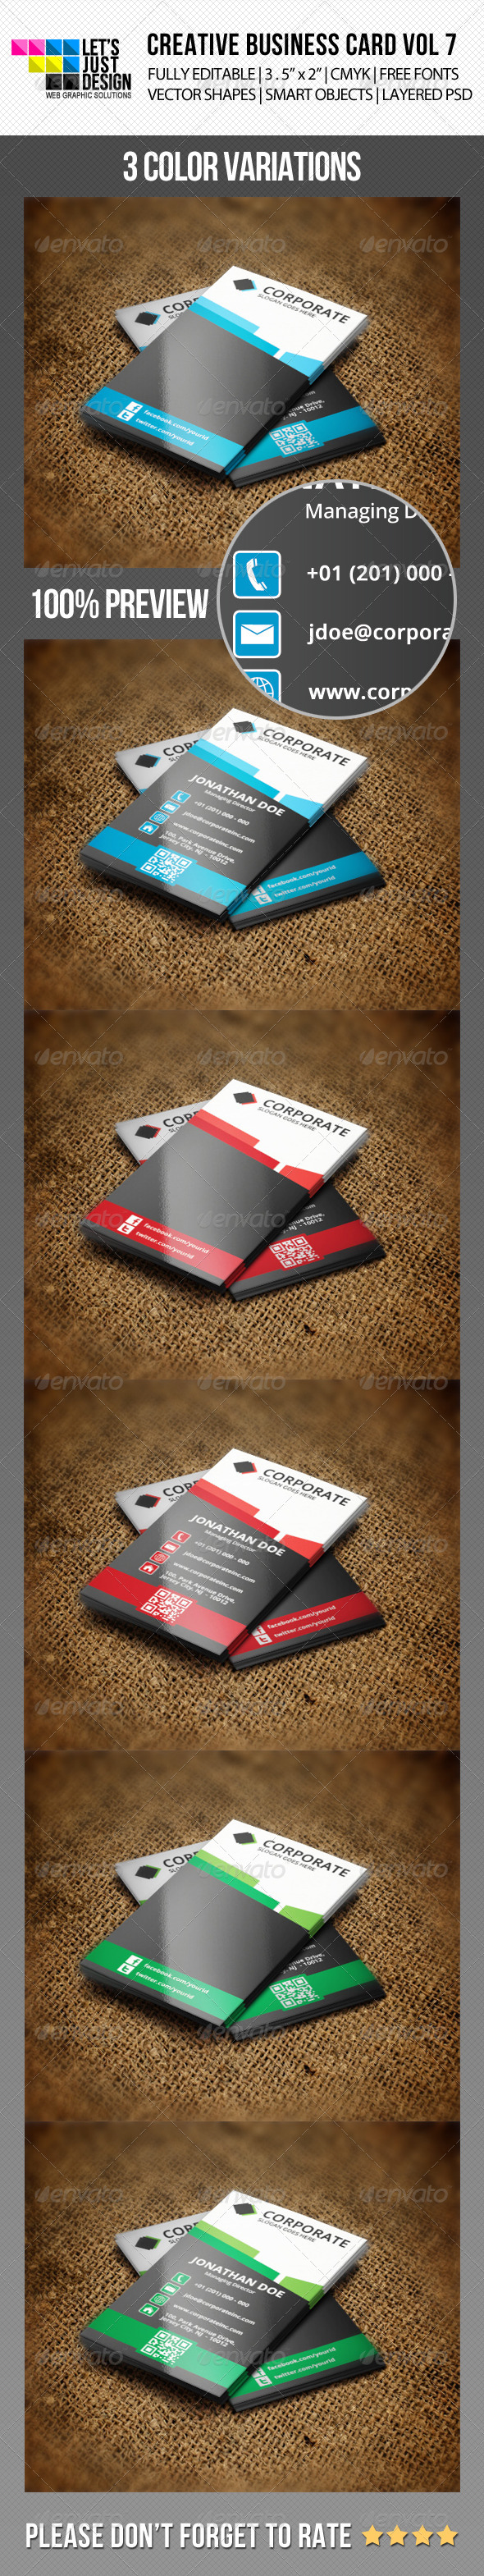 Creative Business Card Vol 7 - Creative Business Cards